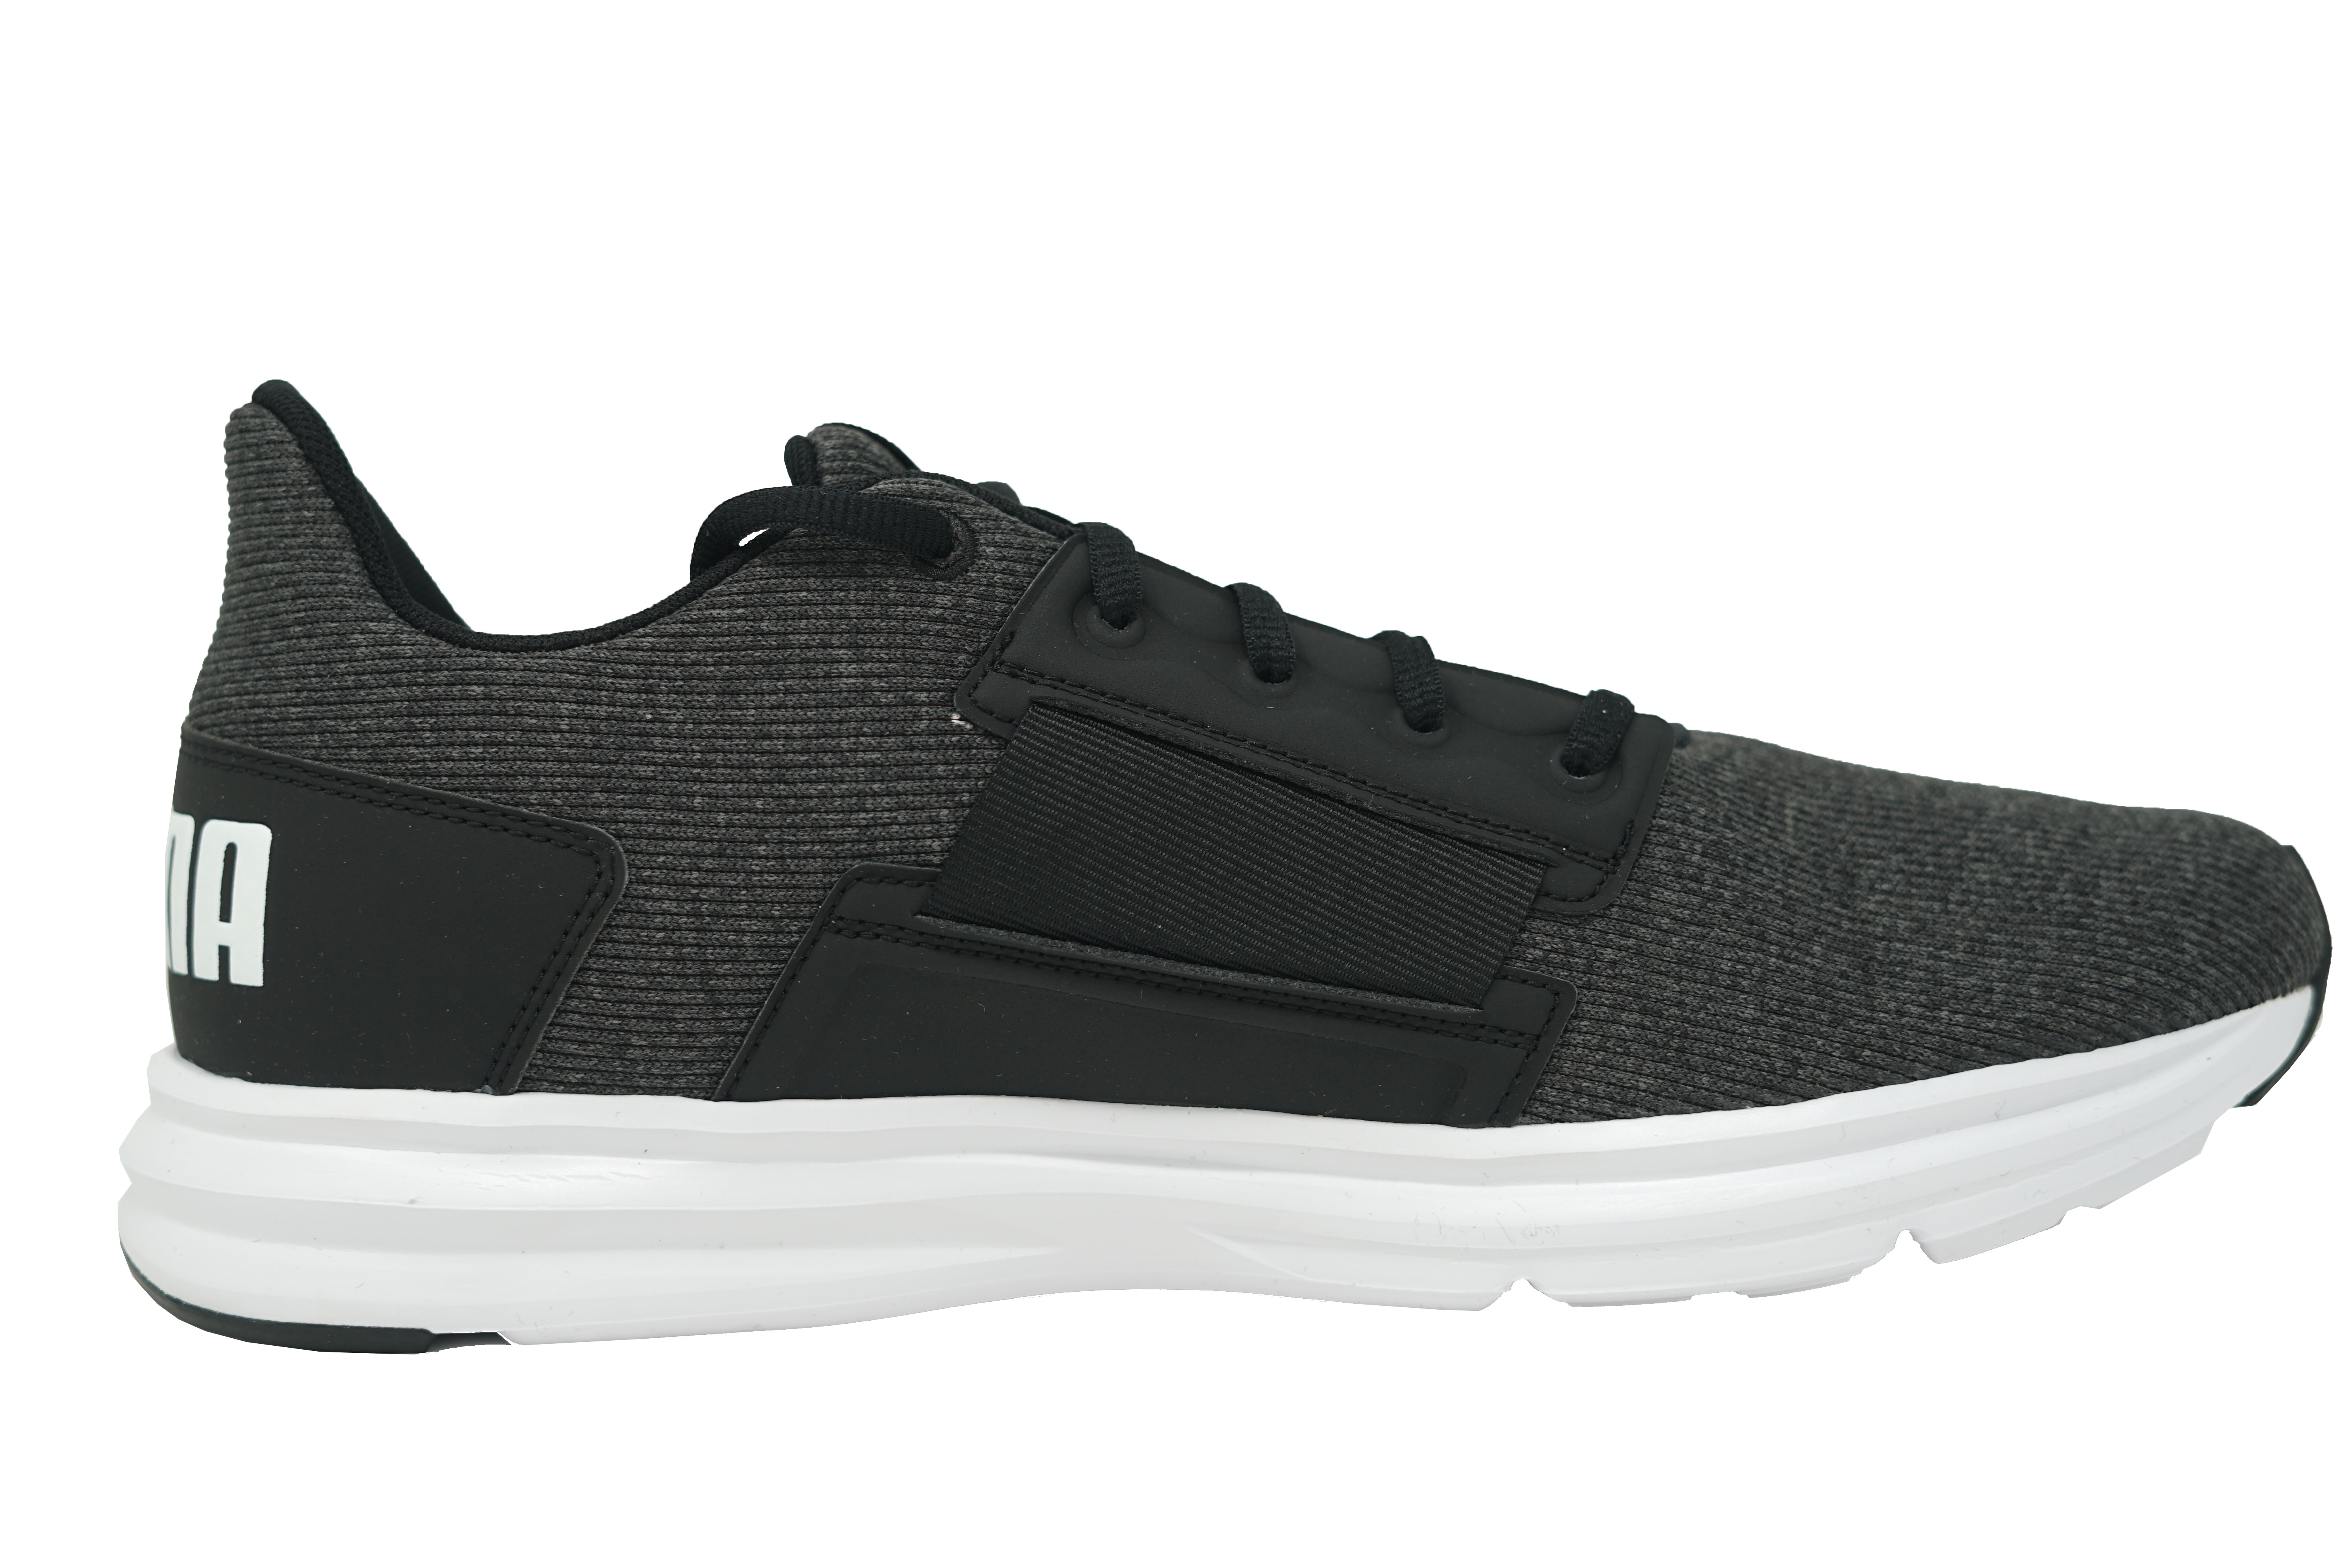 Details about Puma Enzo Street Knit Interest 191076 01 Trainers